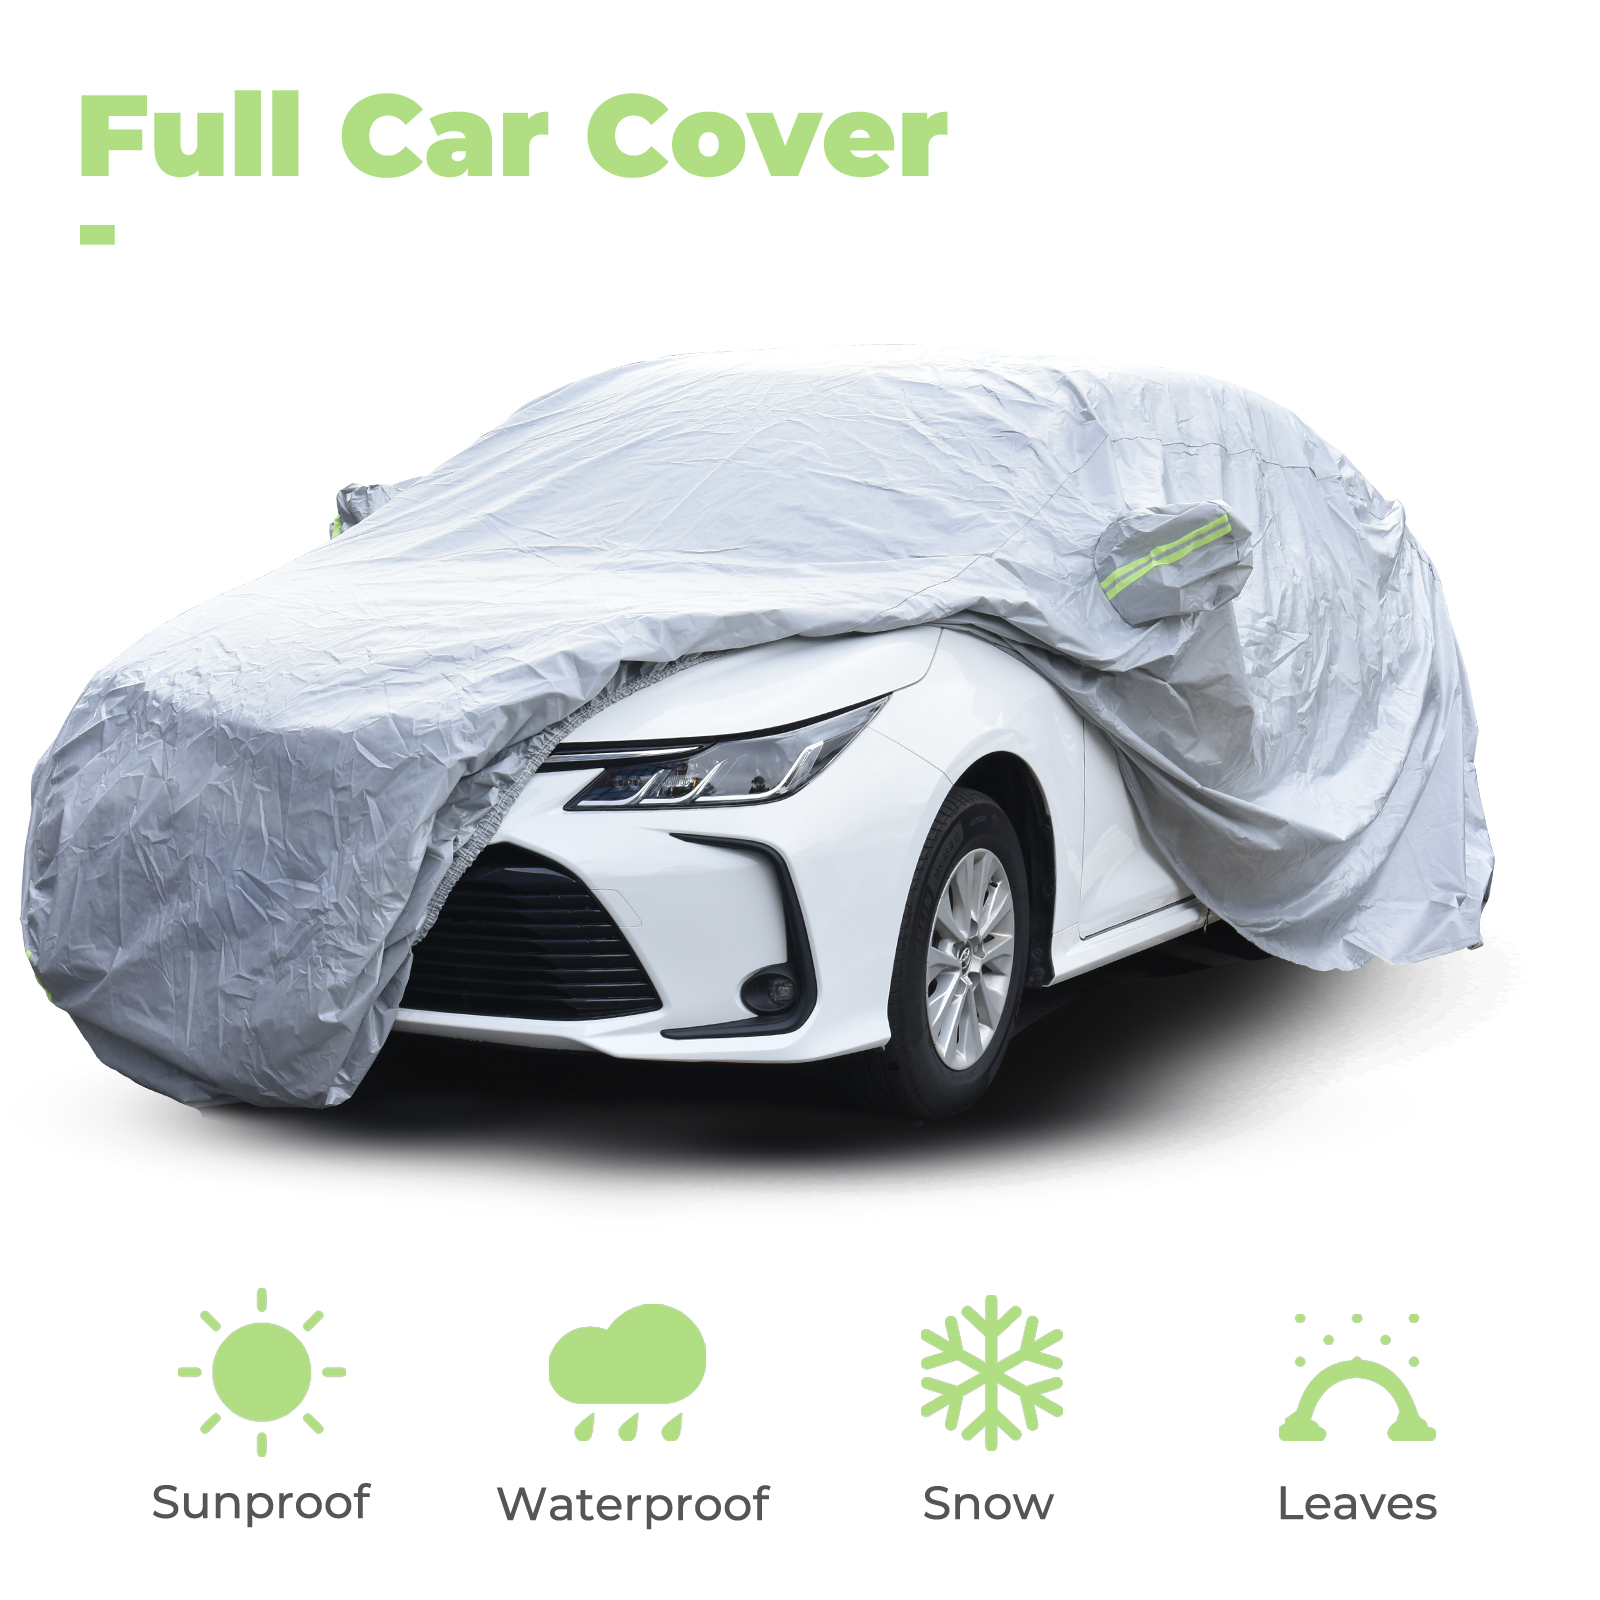 ACUMSTE Universal Car Cover for Sedan,All Weather Waterproof Full Car Covers Outdoor UV Protection Auto Cover Windproof,Dustproof,Waterproof,Scratch Resistant